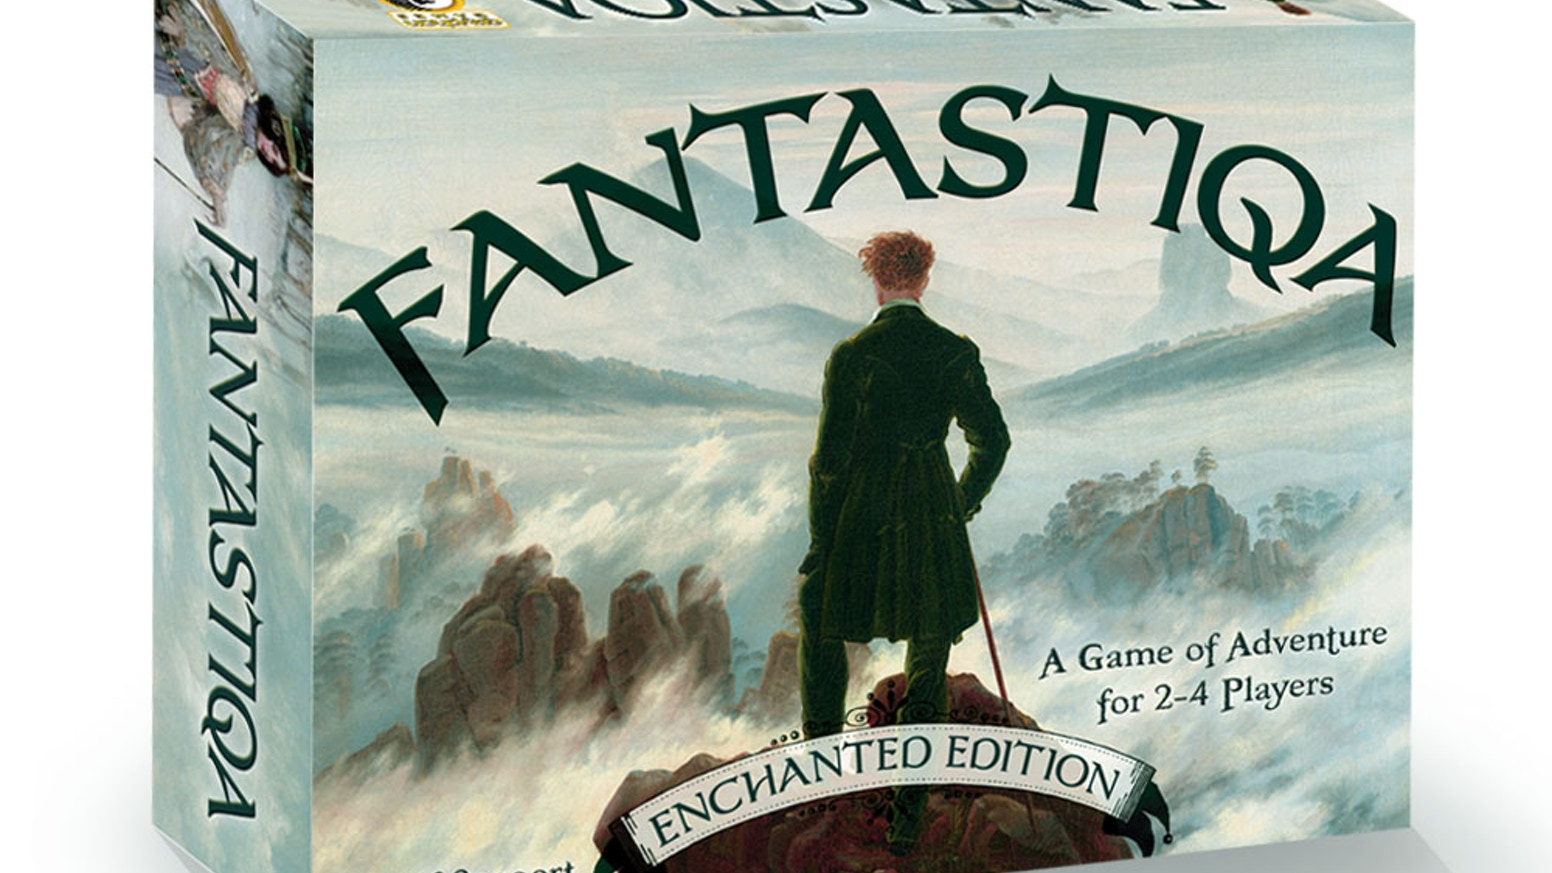 FANTASTIQA is a deck-building board game by Alf Seegert, designer of Trollhalla and The Road to Canterbury, published by Gryphon Games.